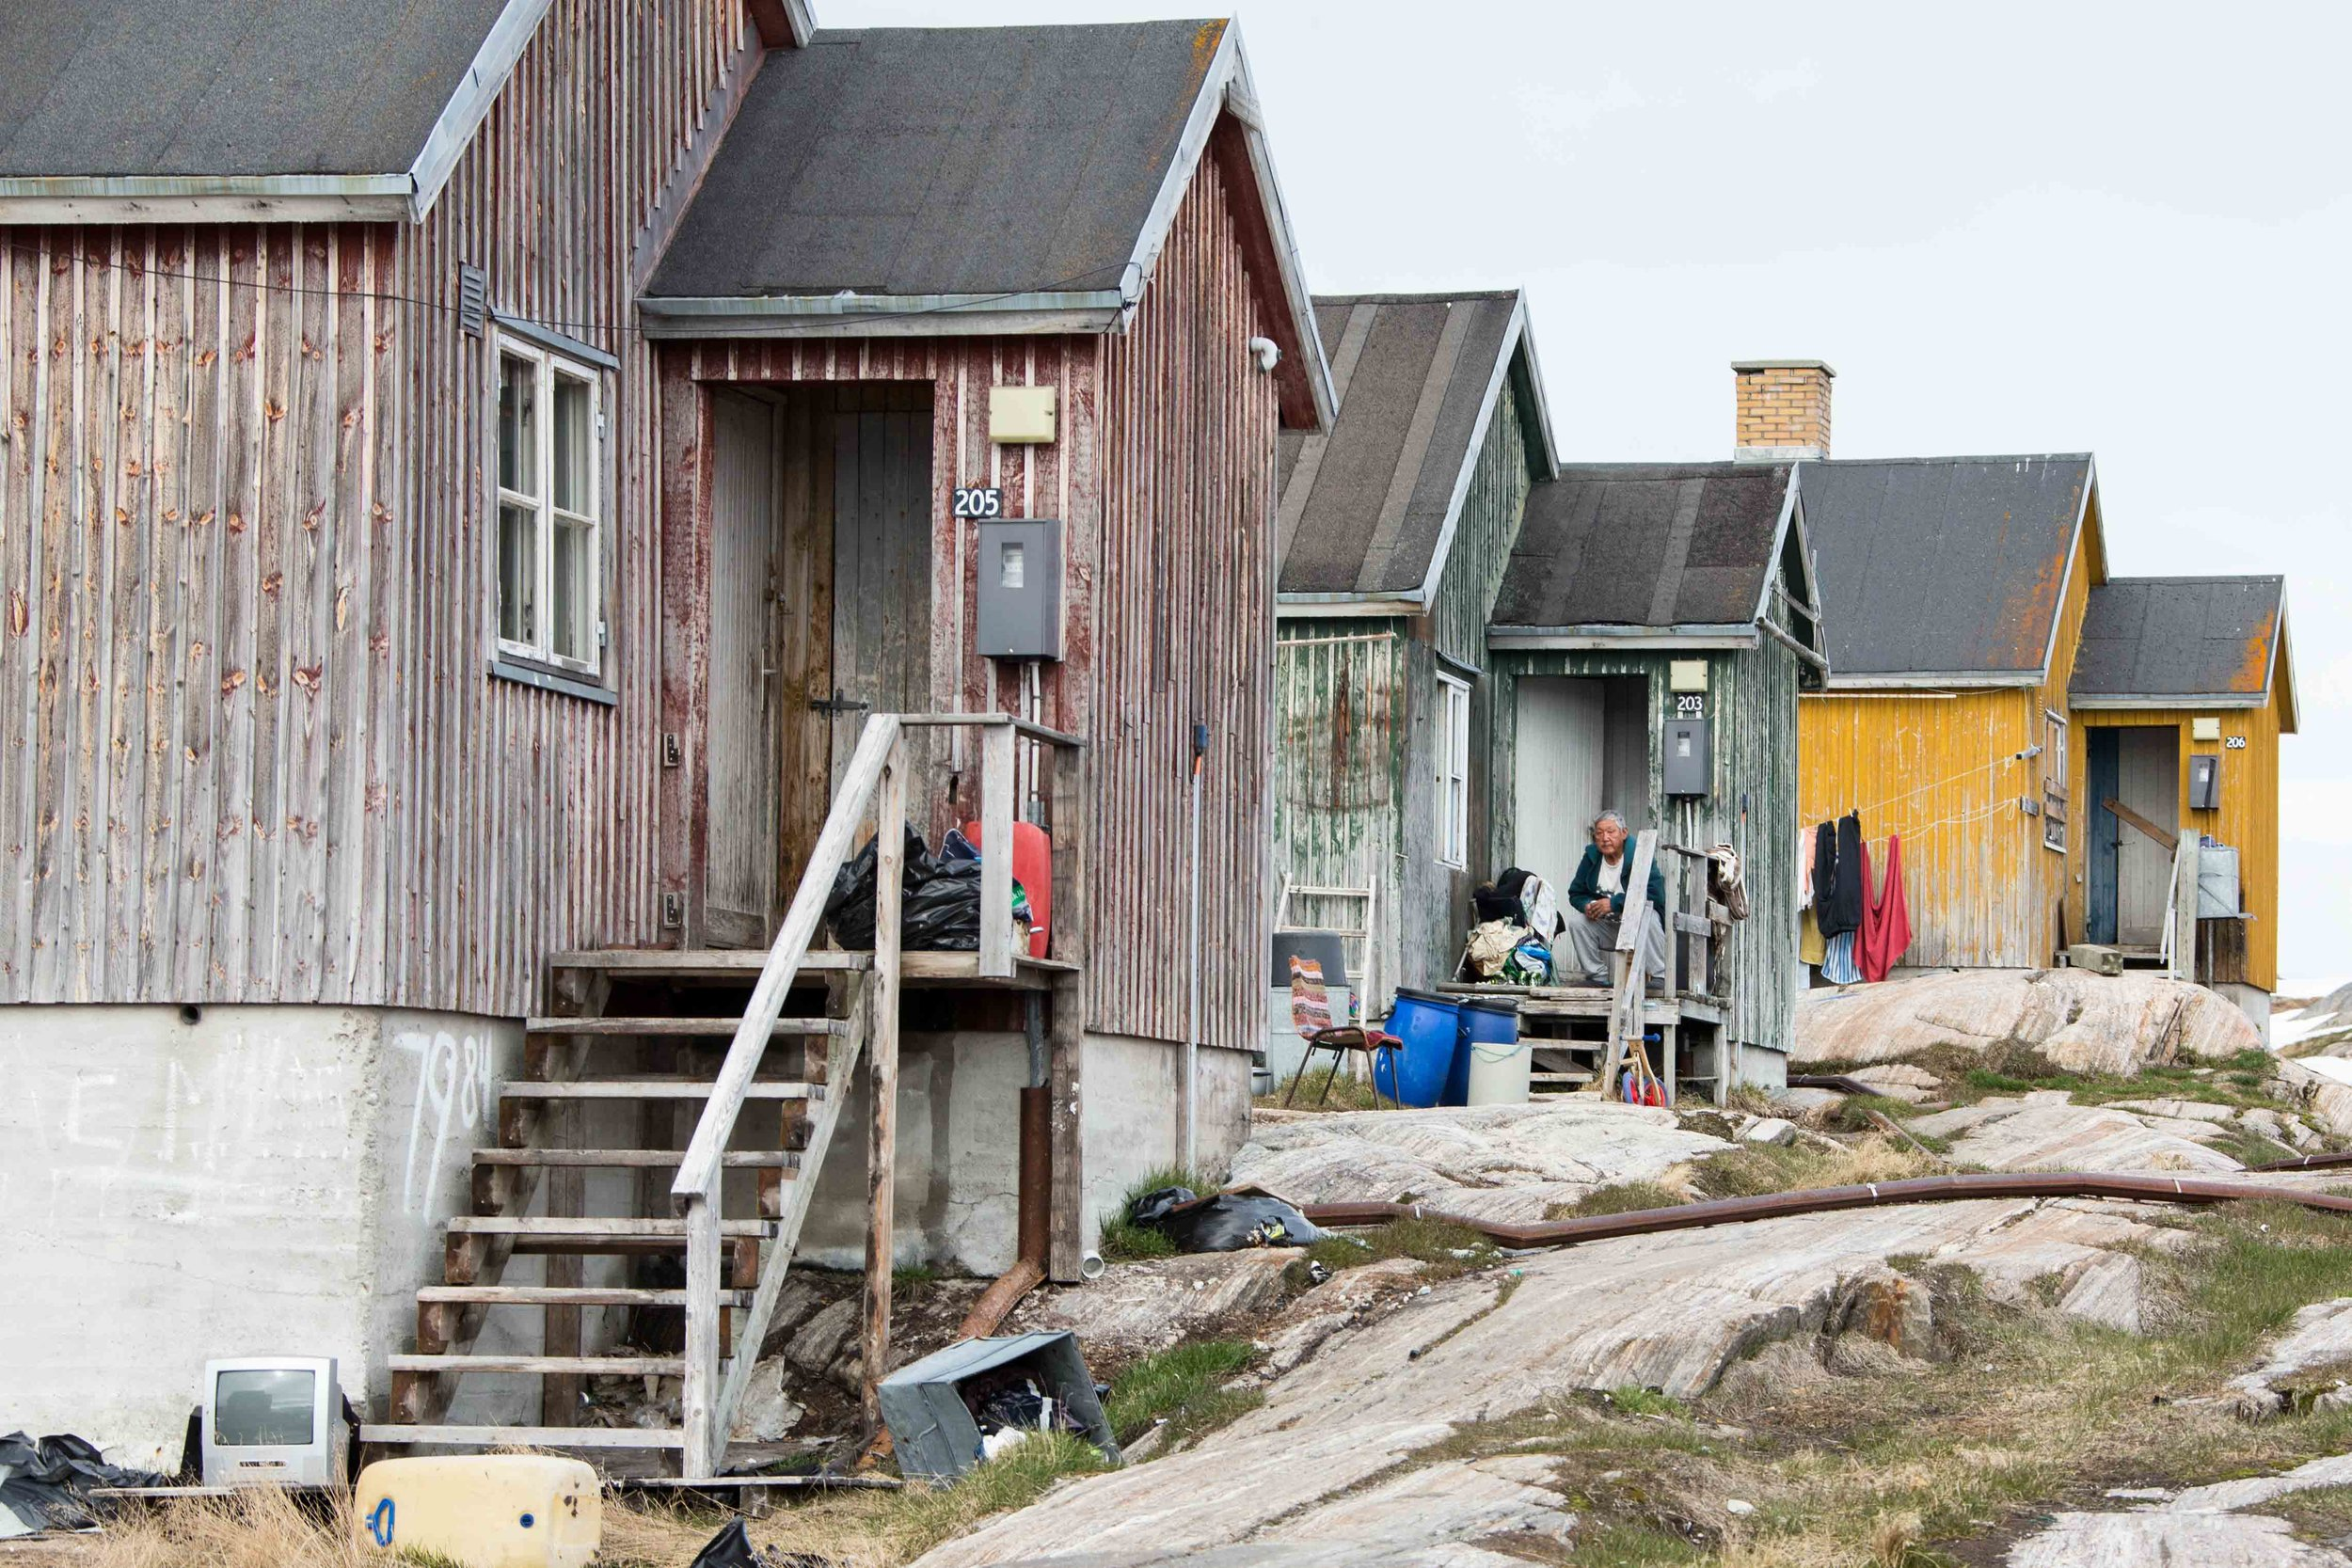 A town elder sits on his porch in Kuummiut, Greenland.